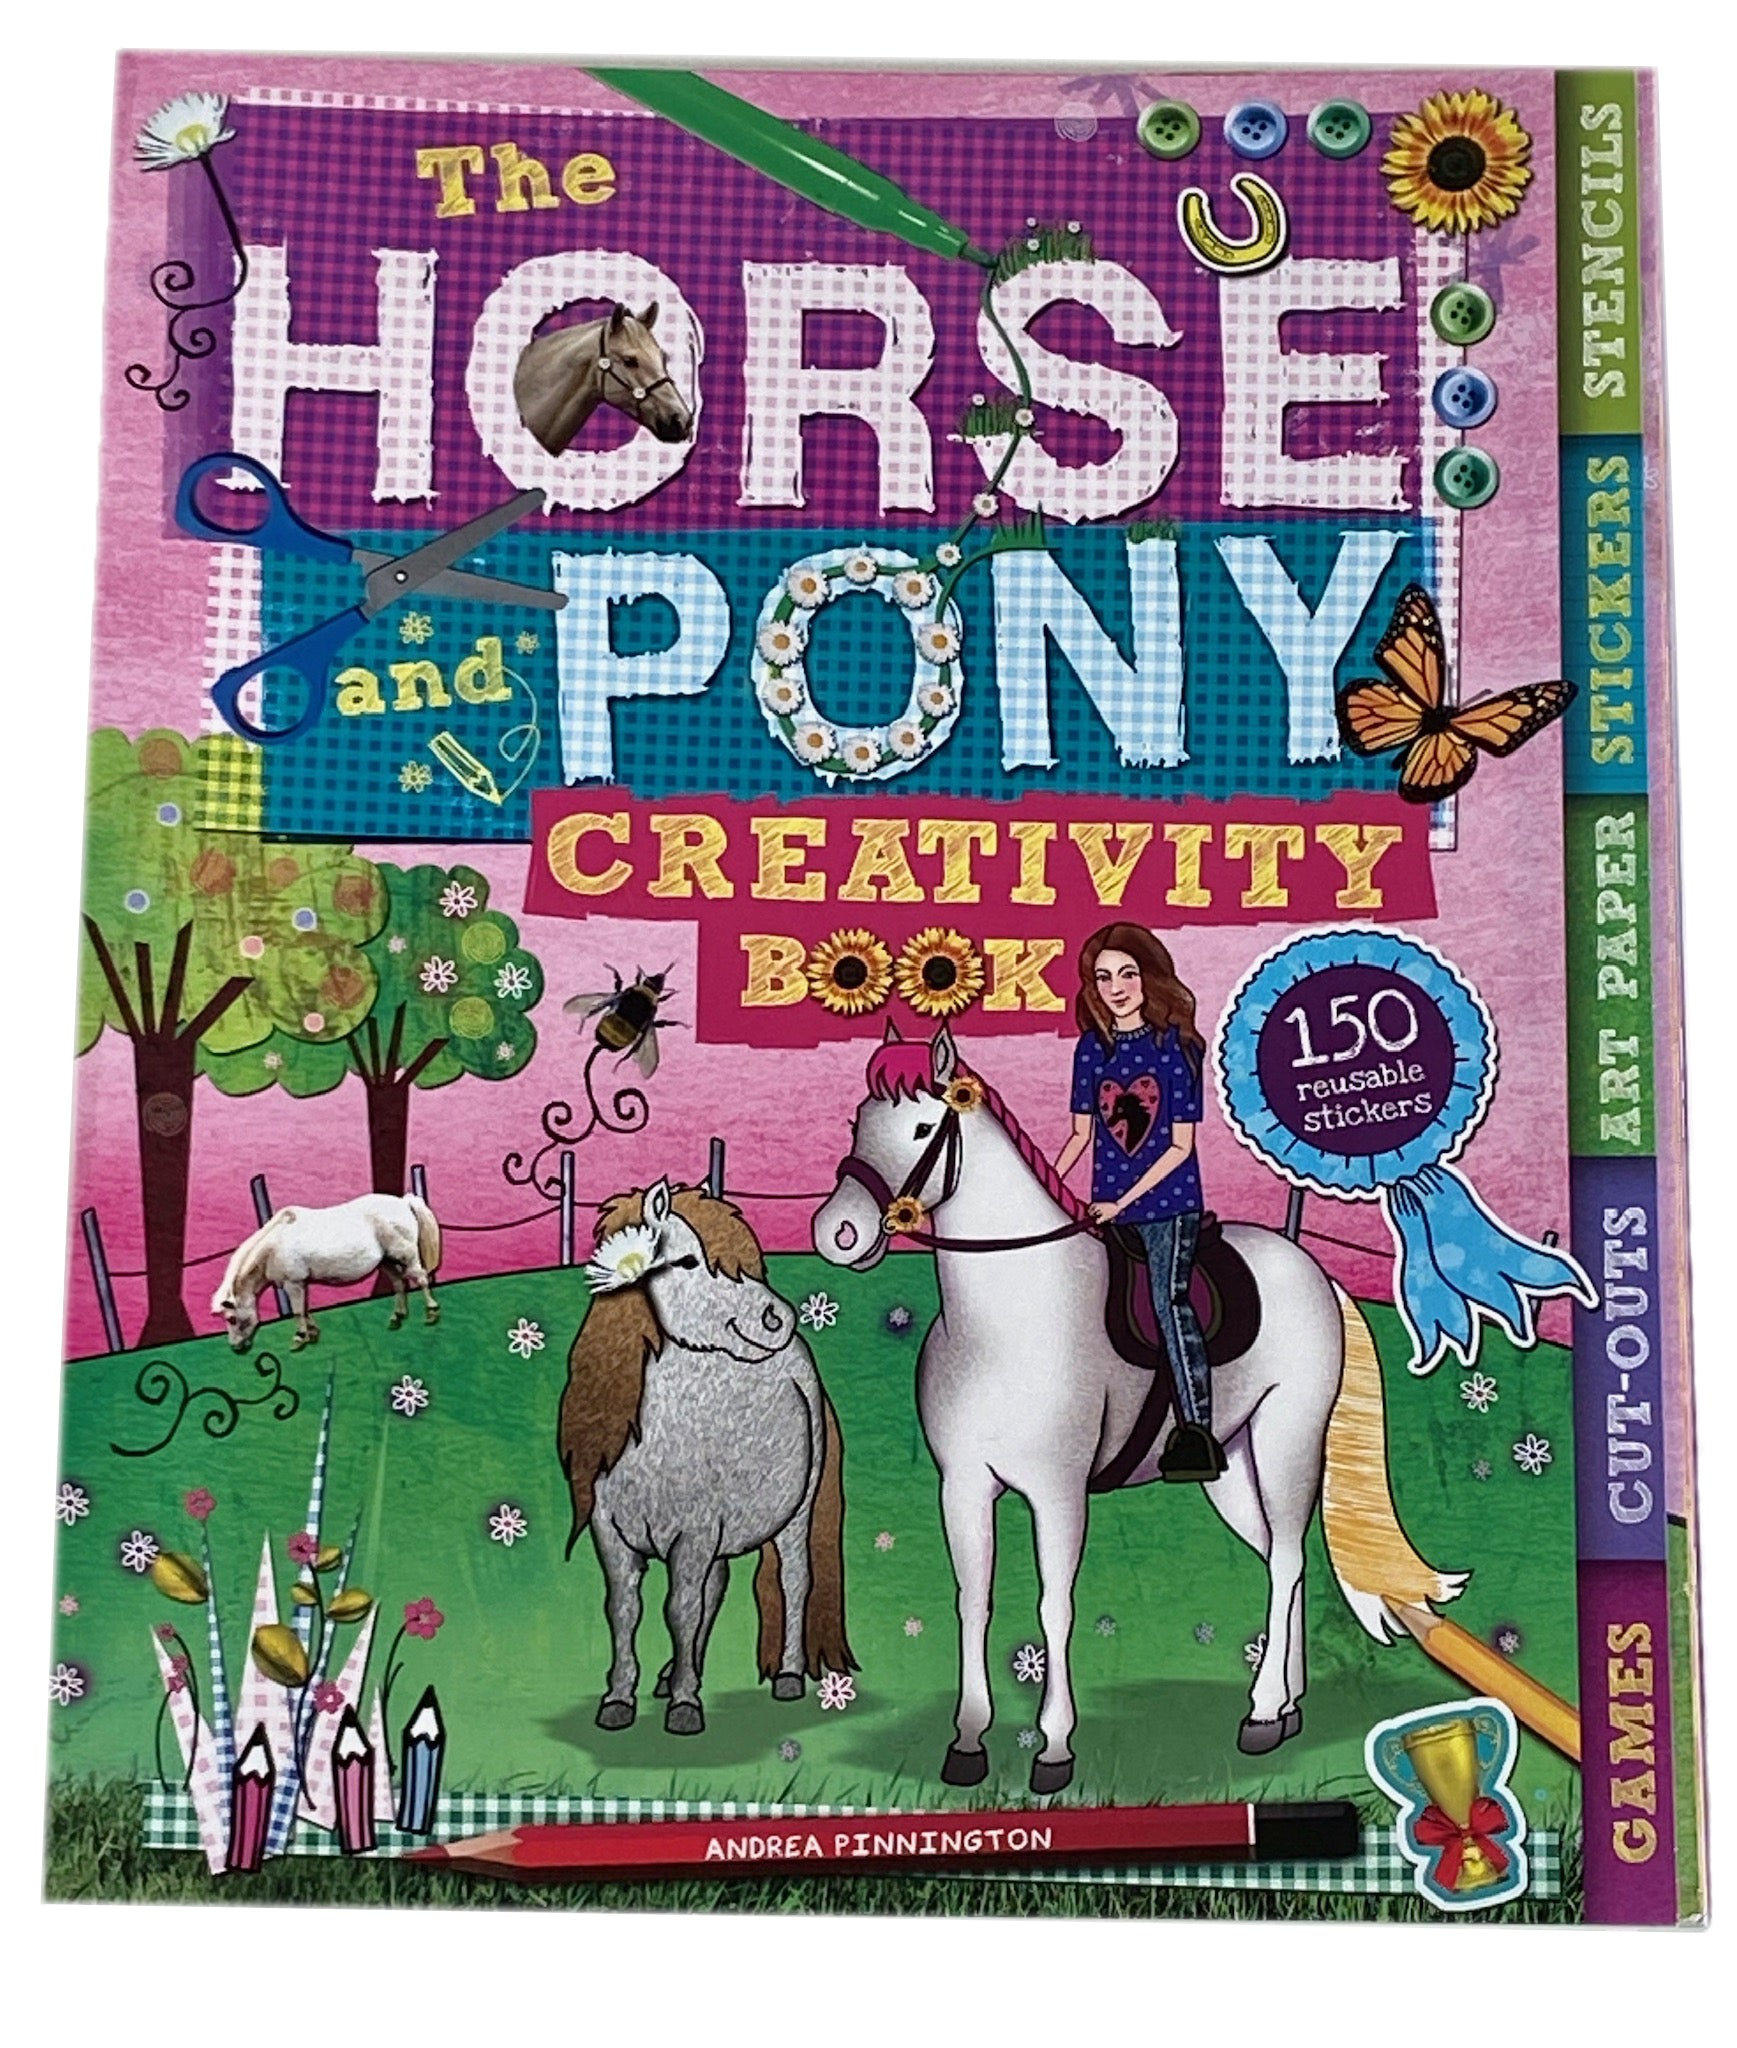 The Horse & Pony Creativity Book